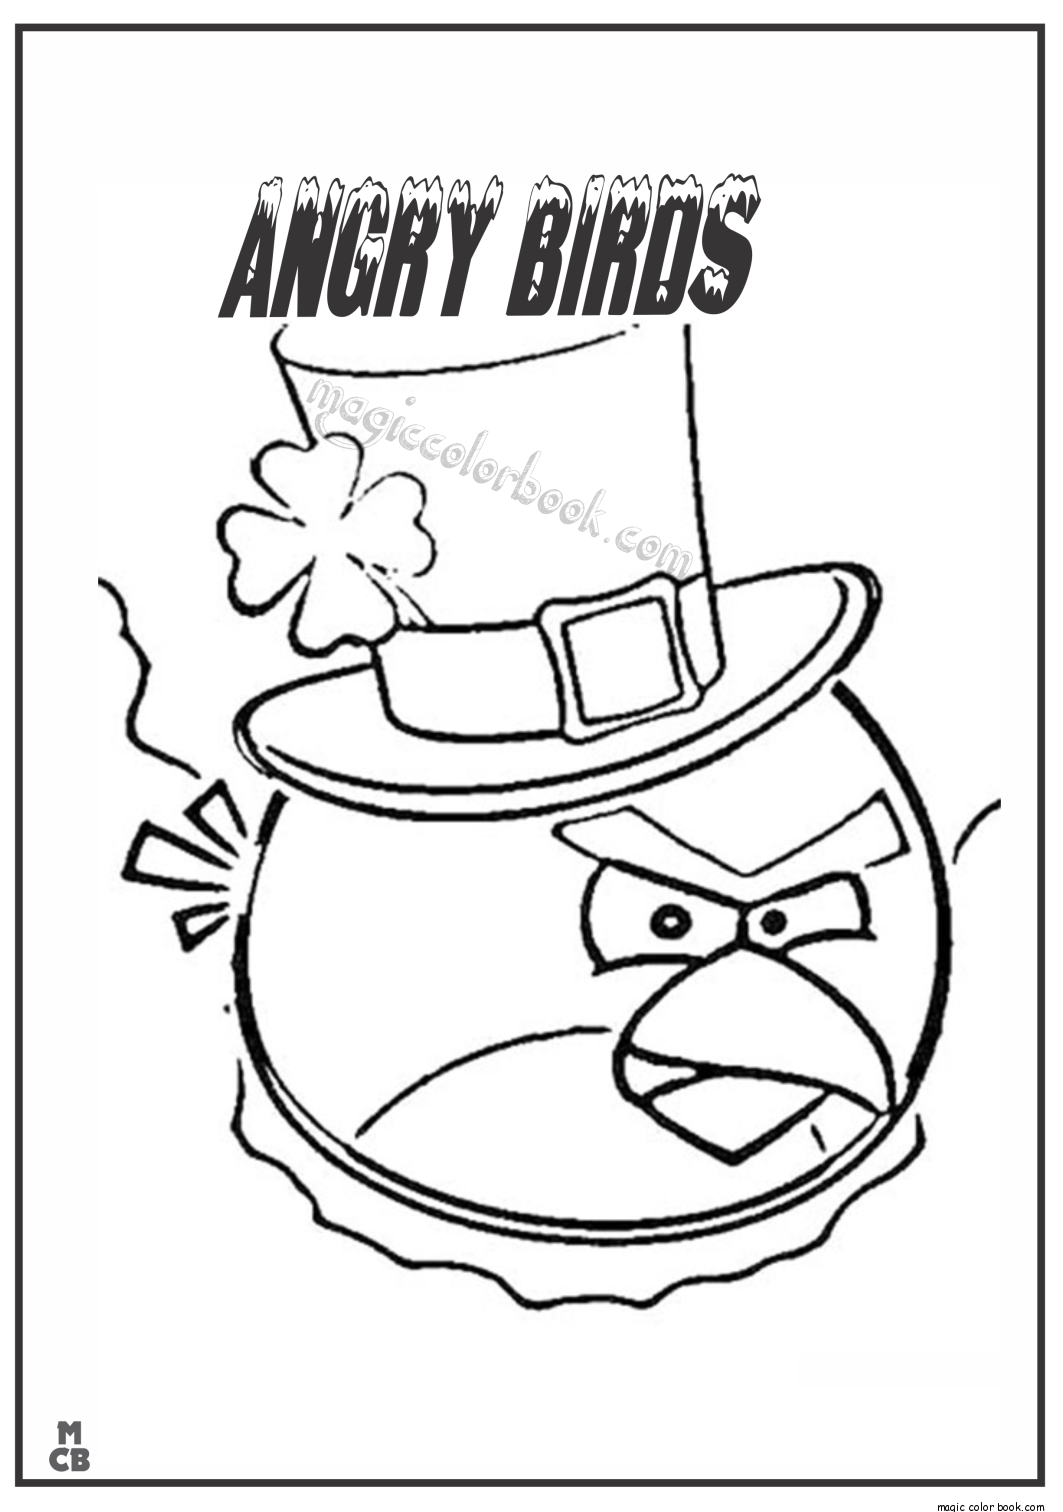 Angry Birds Seasons Coloring Pages - Coloring Home | 1512x1063